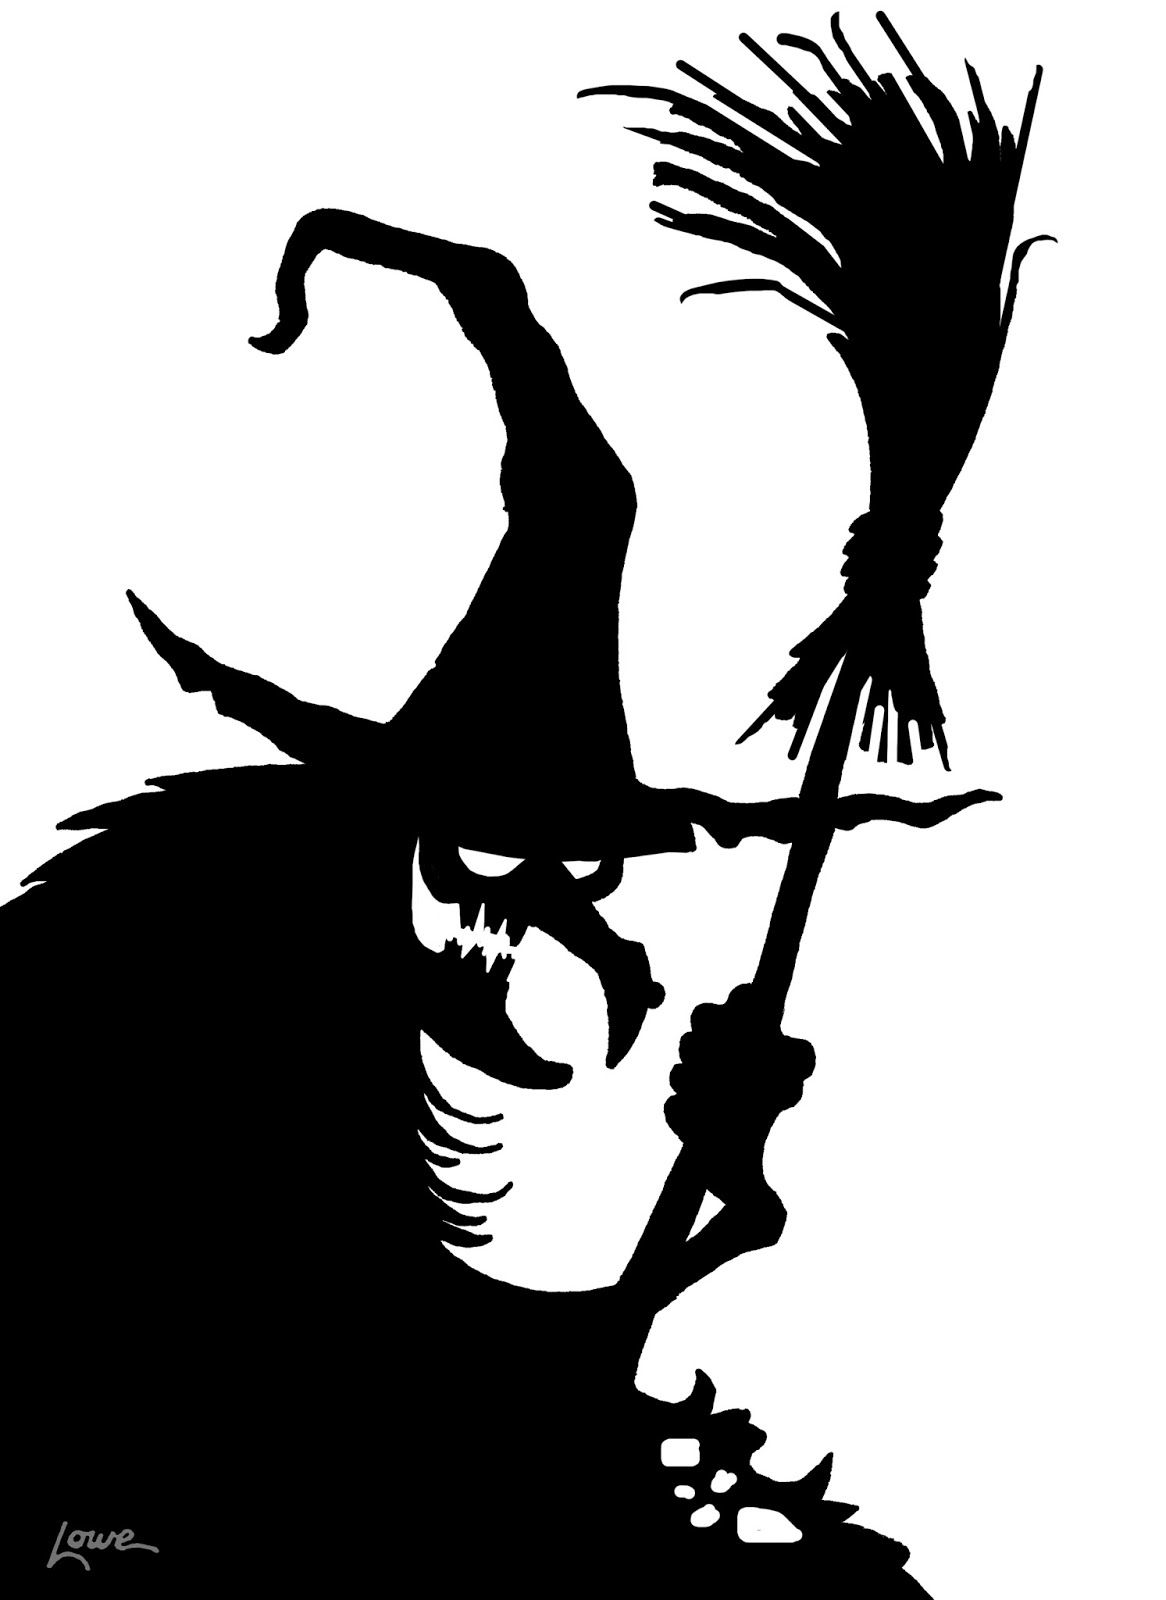 DAVE LOWE DESIGN the Blog: Witchcrafty Window Silhouette ...